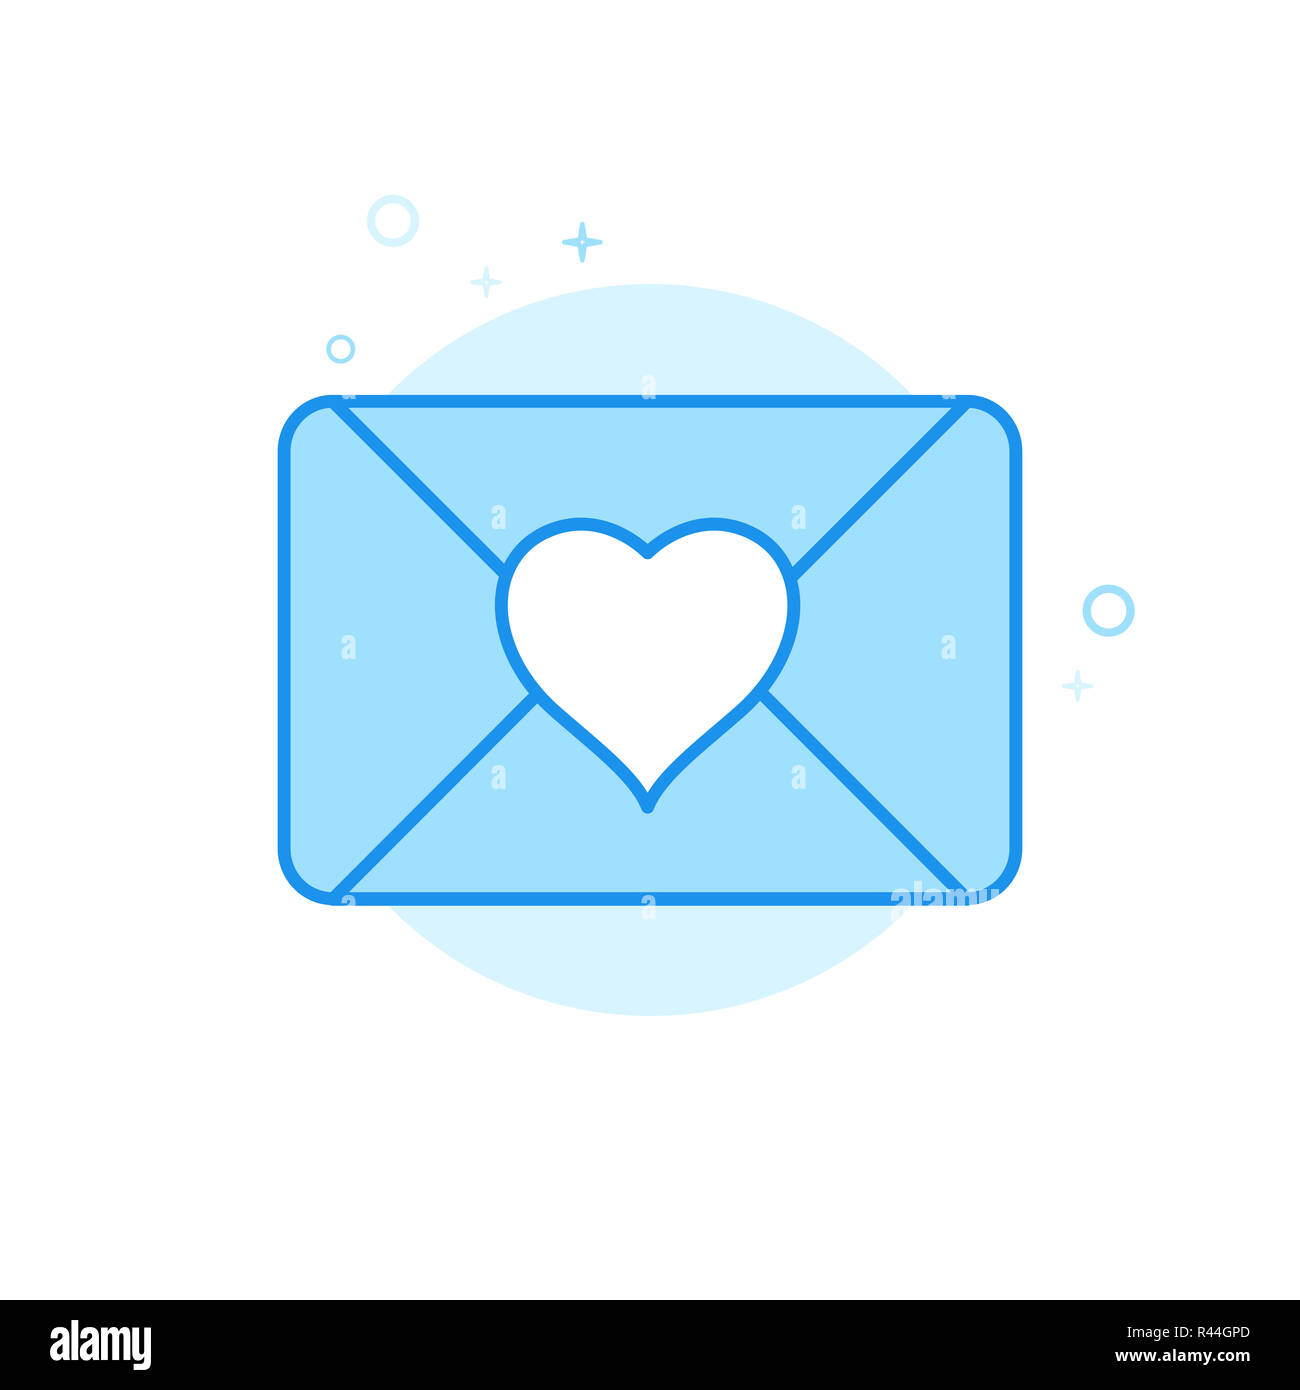 love letter flat icon wedding invitation symbol pictogram sign light flat style blue monochrome design editable stroke adjust line weight desi